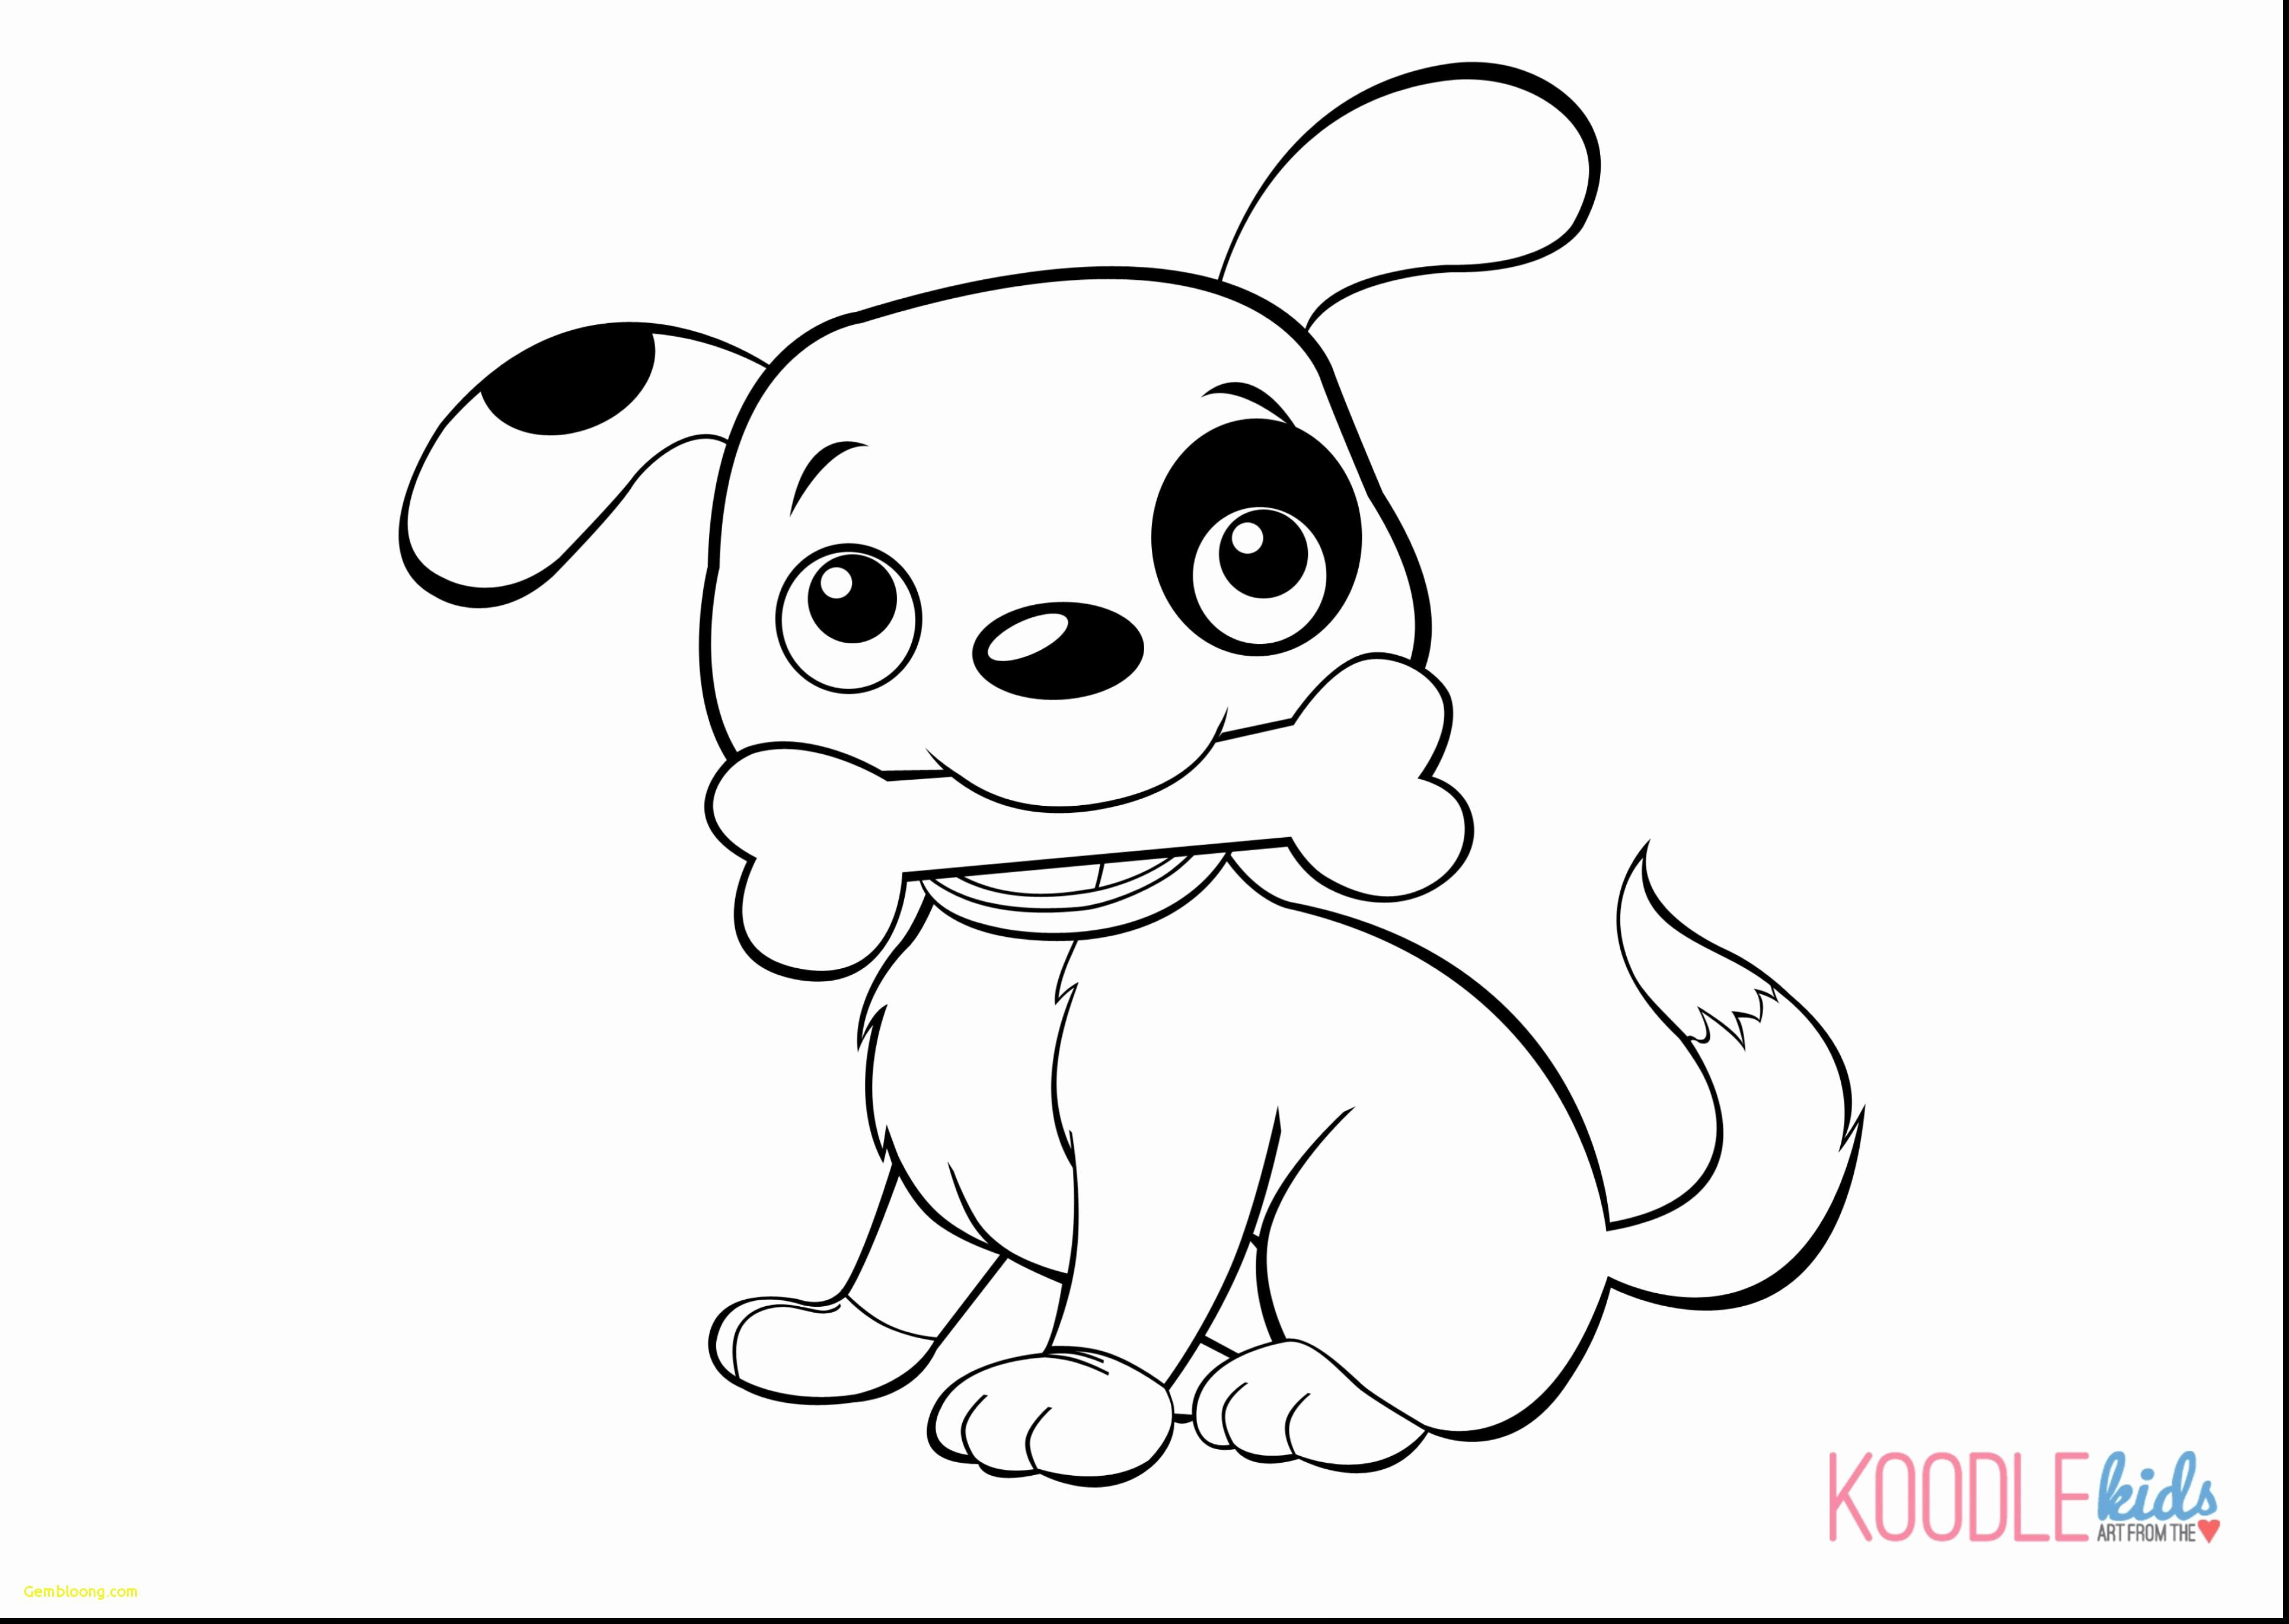 Dog Coloring Pages Free Printable In 2020 Puppy Coloring Pages